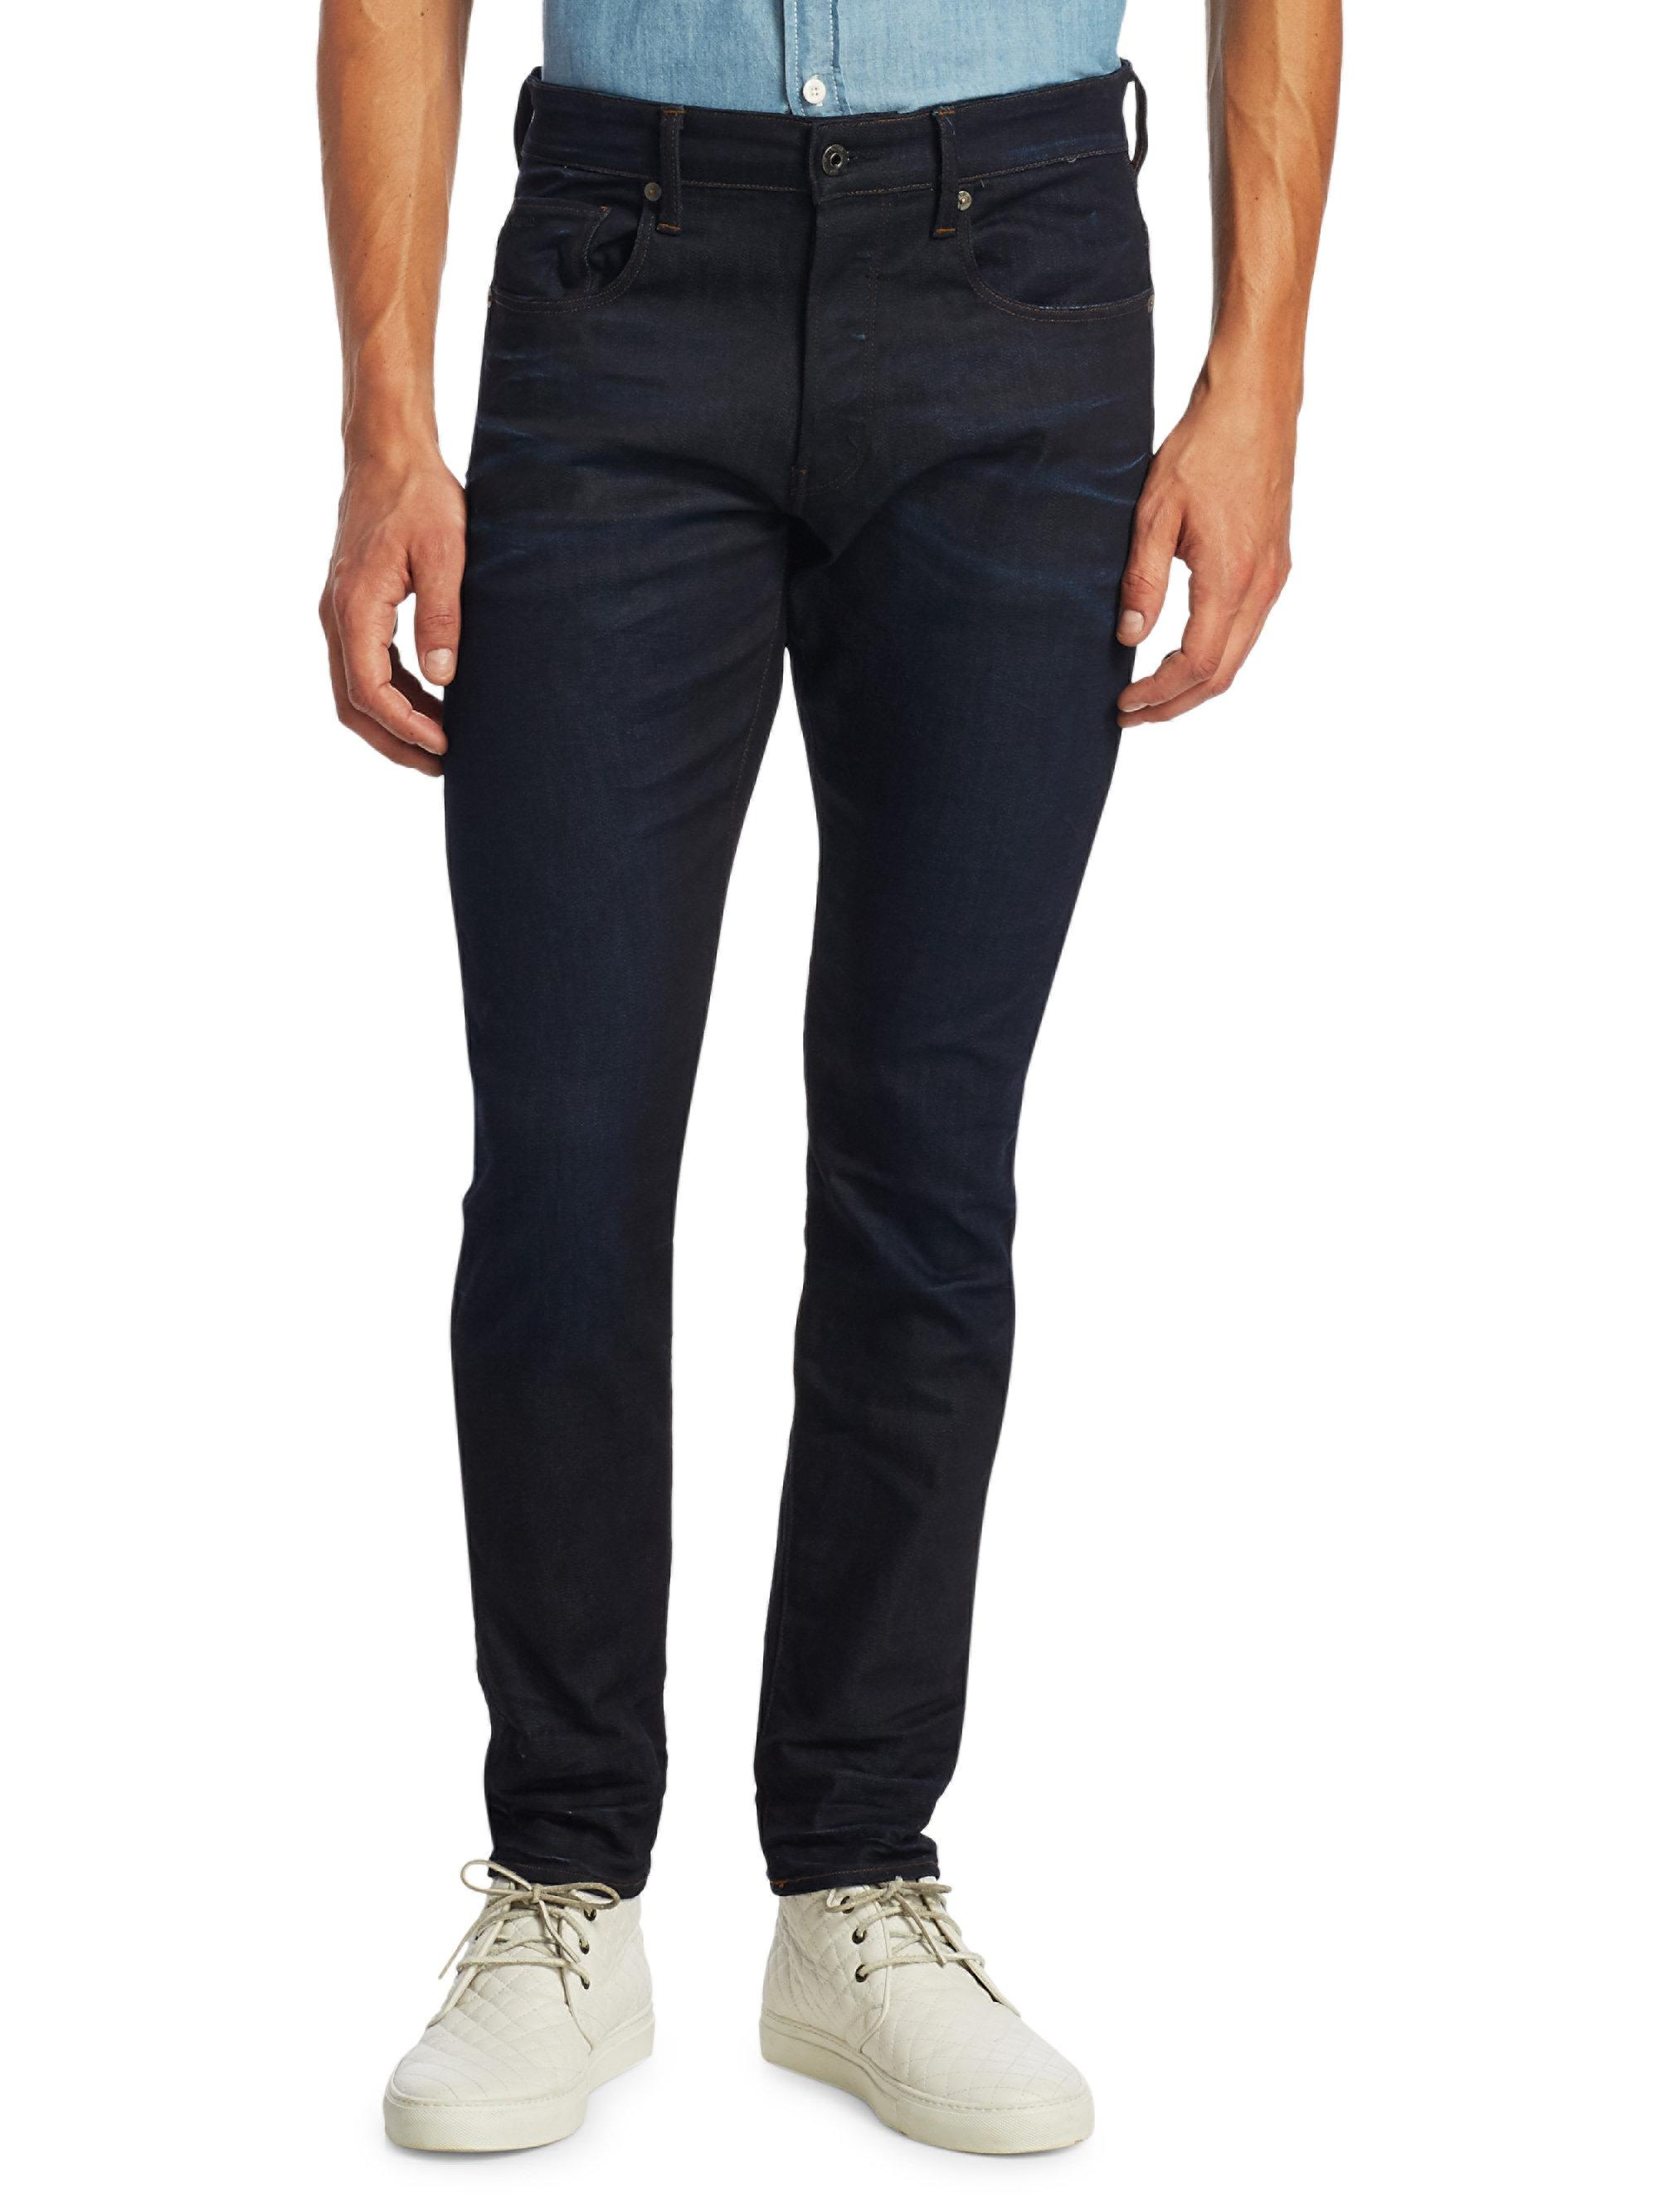 G Star Raw Shoes Price